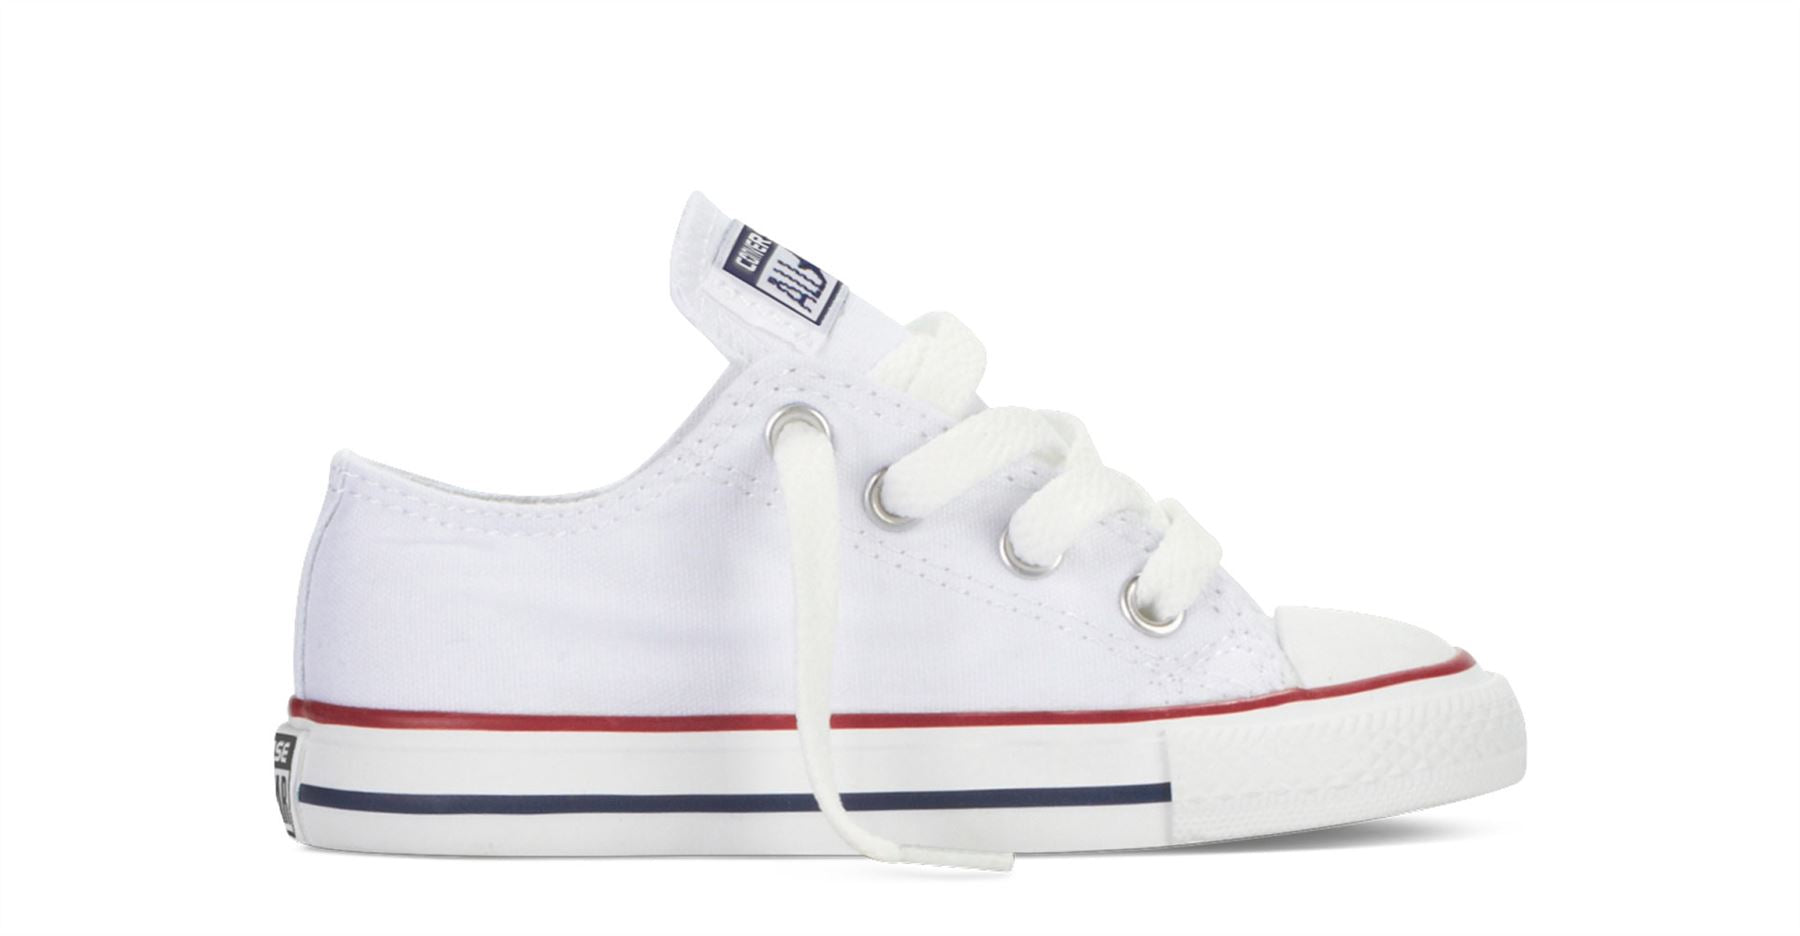 CONVERSE INF C/T A/S OX OPTICAL WHITE 7J256C